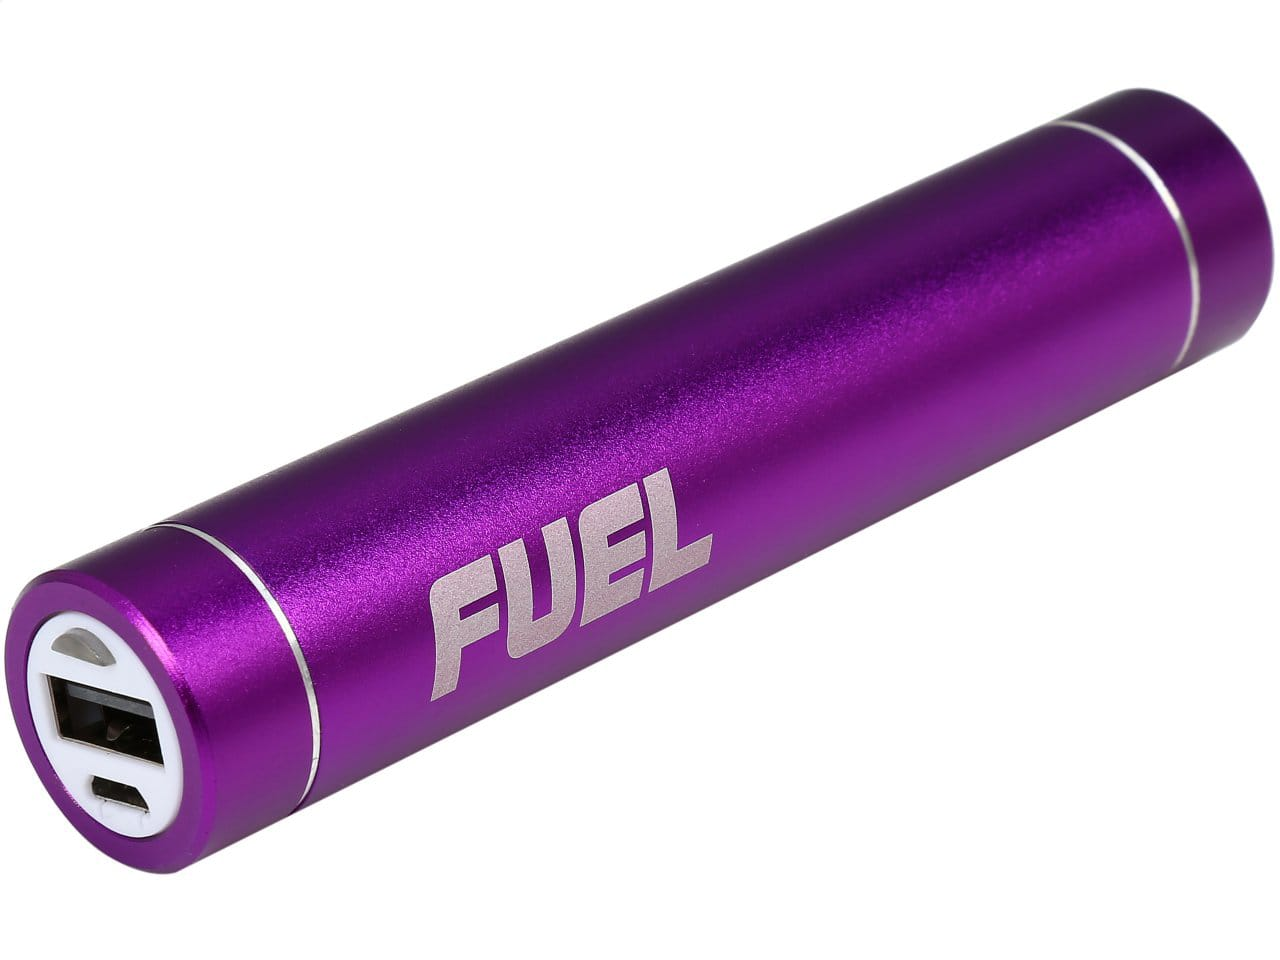 Patriot FUEL Active 2,000 mAh Purple Lipstick Charger with LED Flashlight (PCPA20001PP) for $1.99 AR + Free Shipping @ NeweggFlash.com